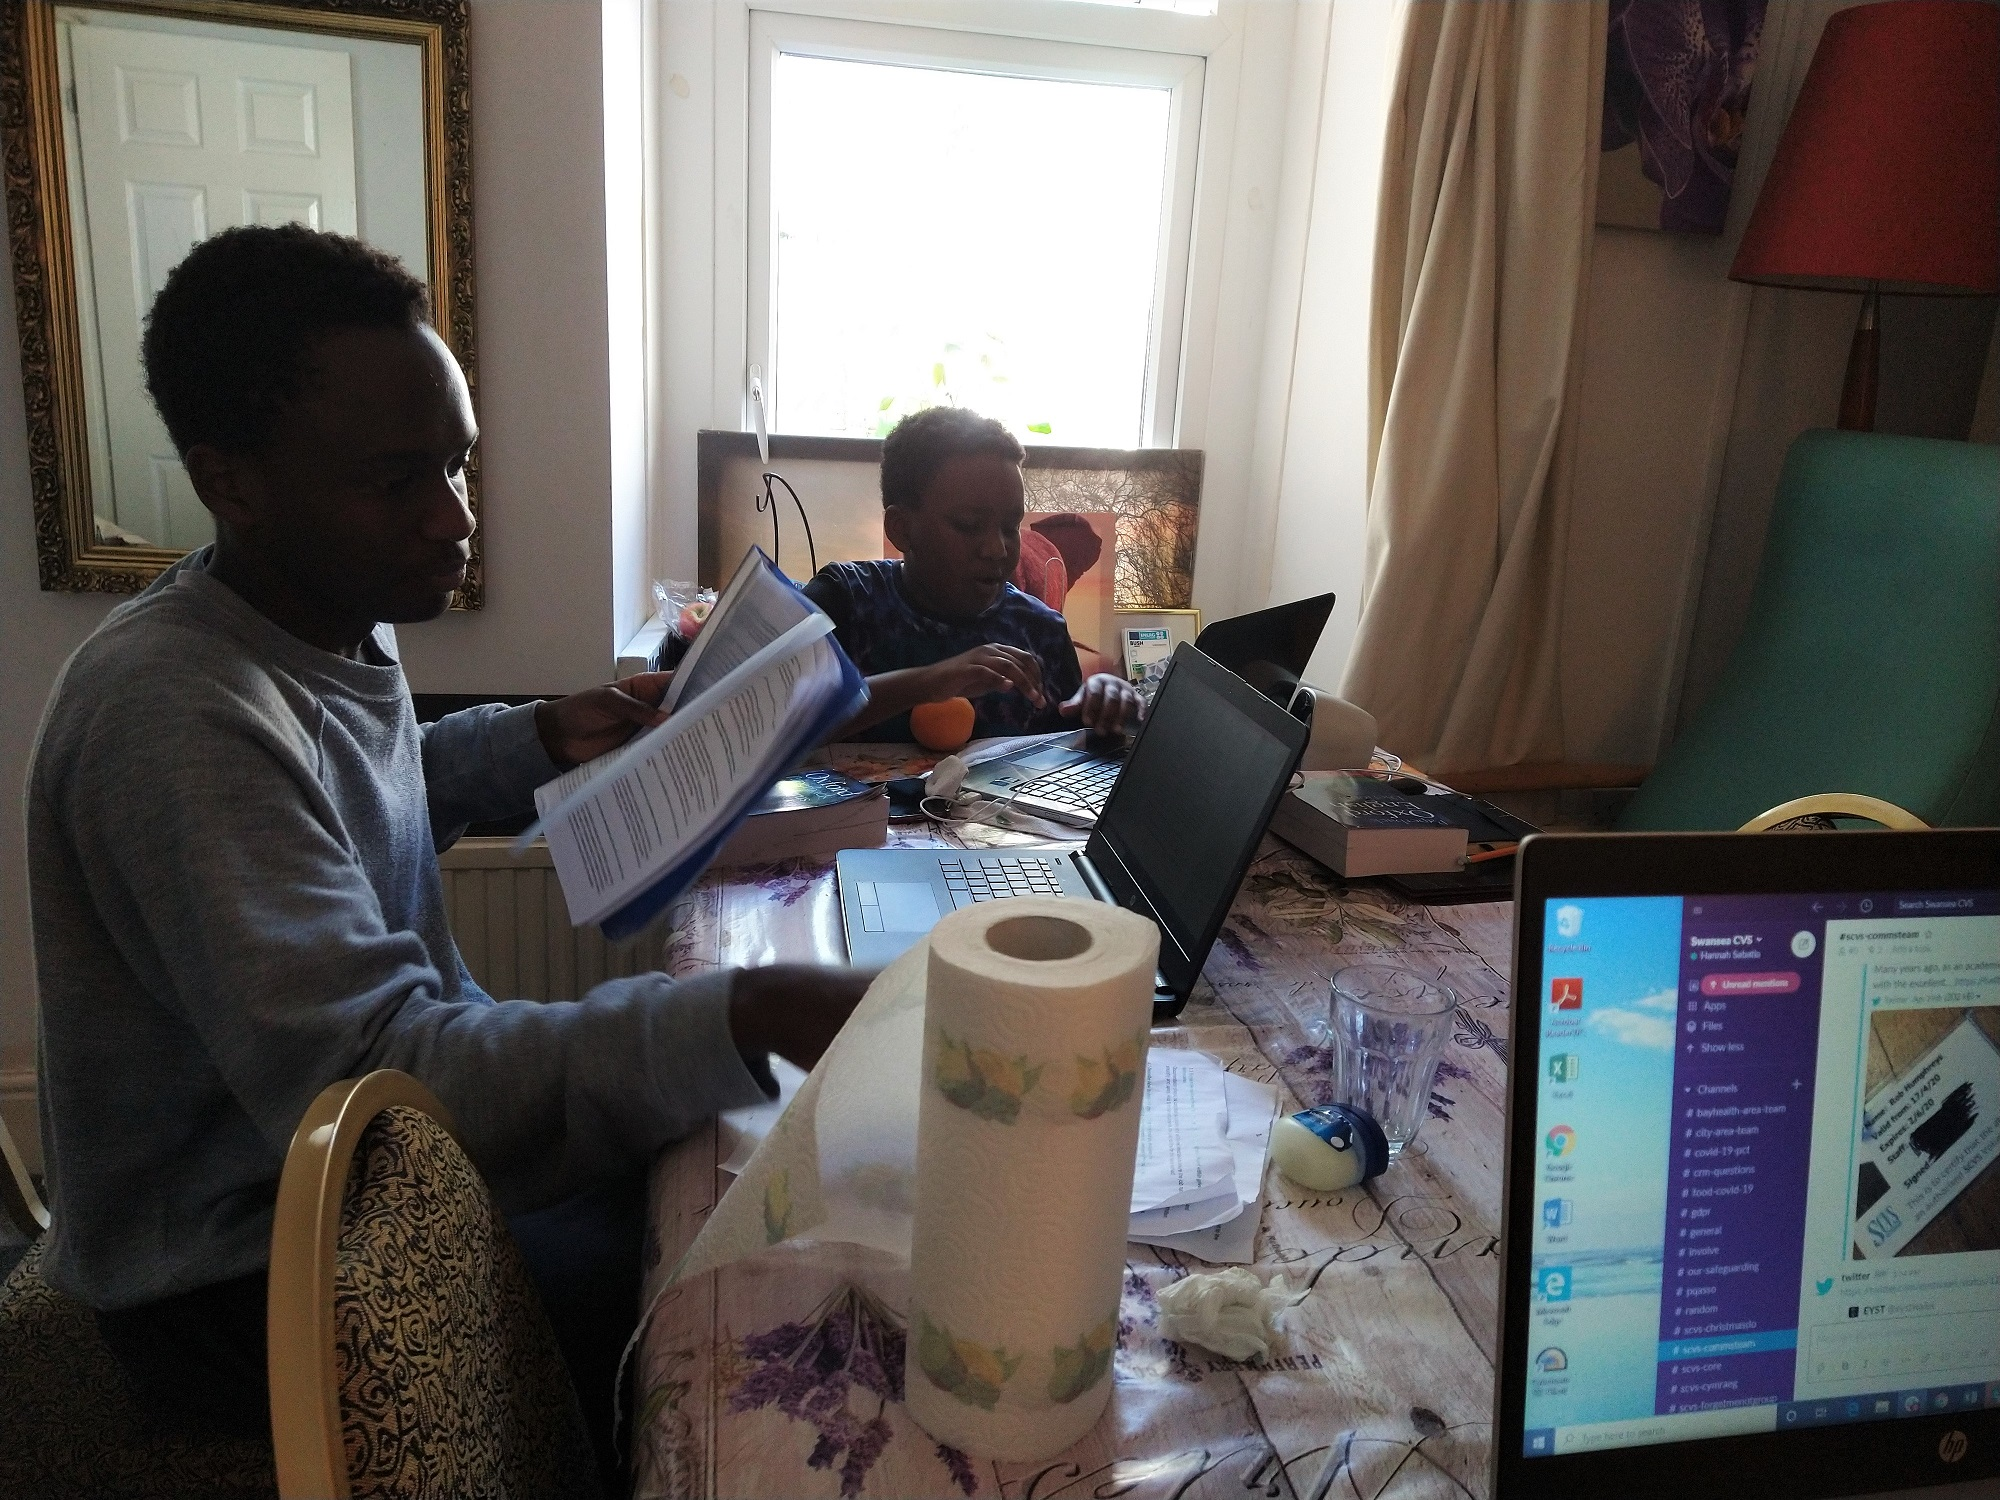 A man and child work together at a dining table, filled with technology and papers as they work from home